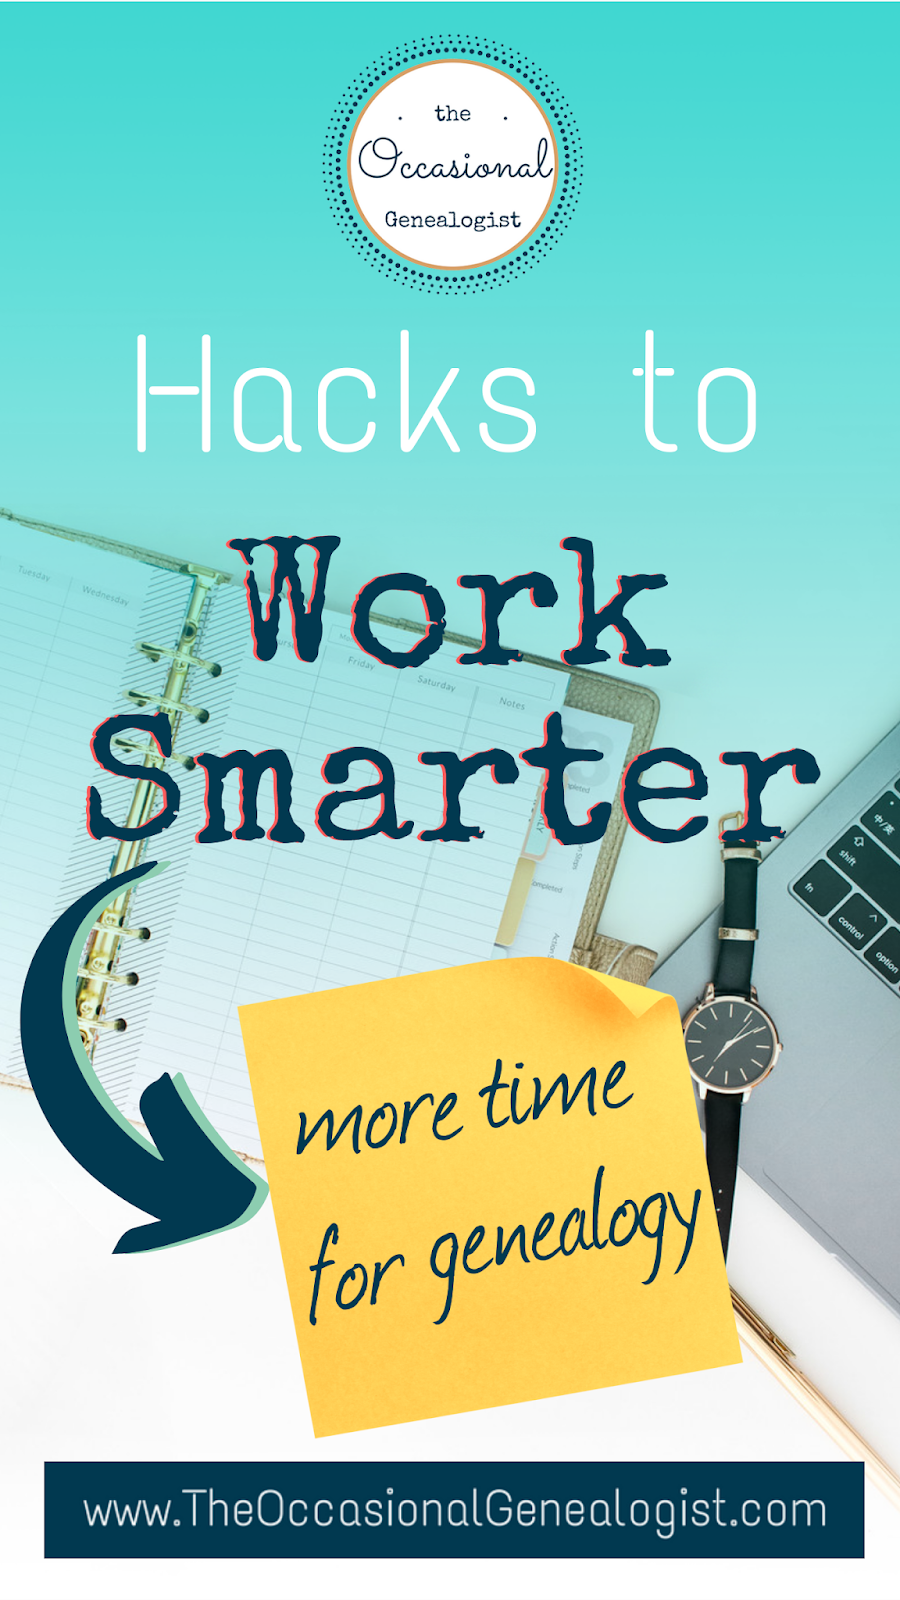 Hacks to Work Smarter | The Occasional Genealogist